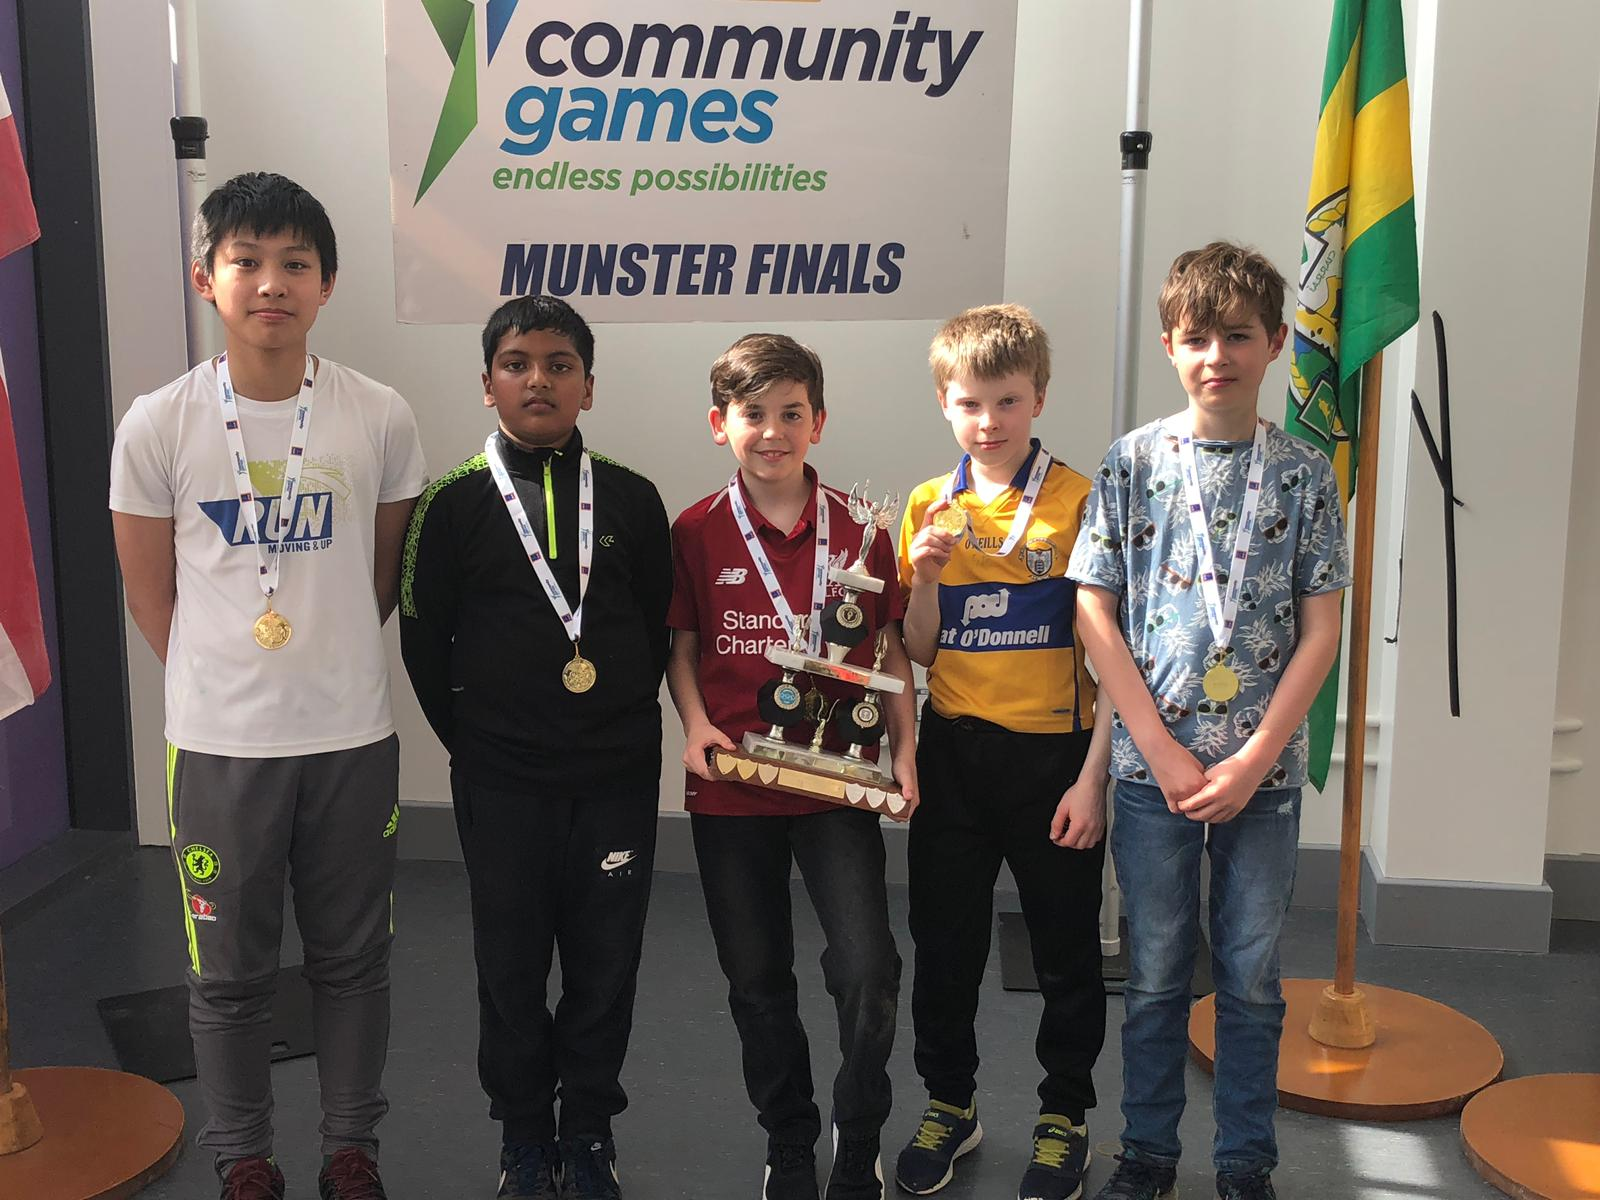 01 chess ennis munster 2019